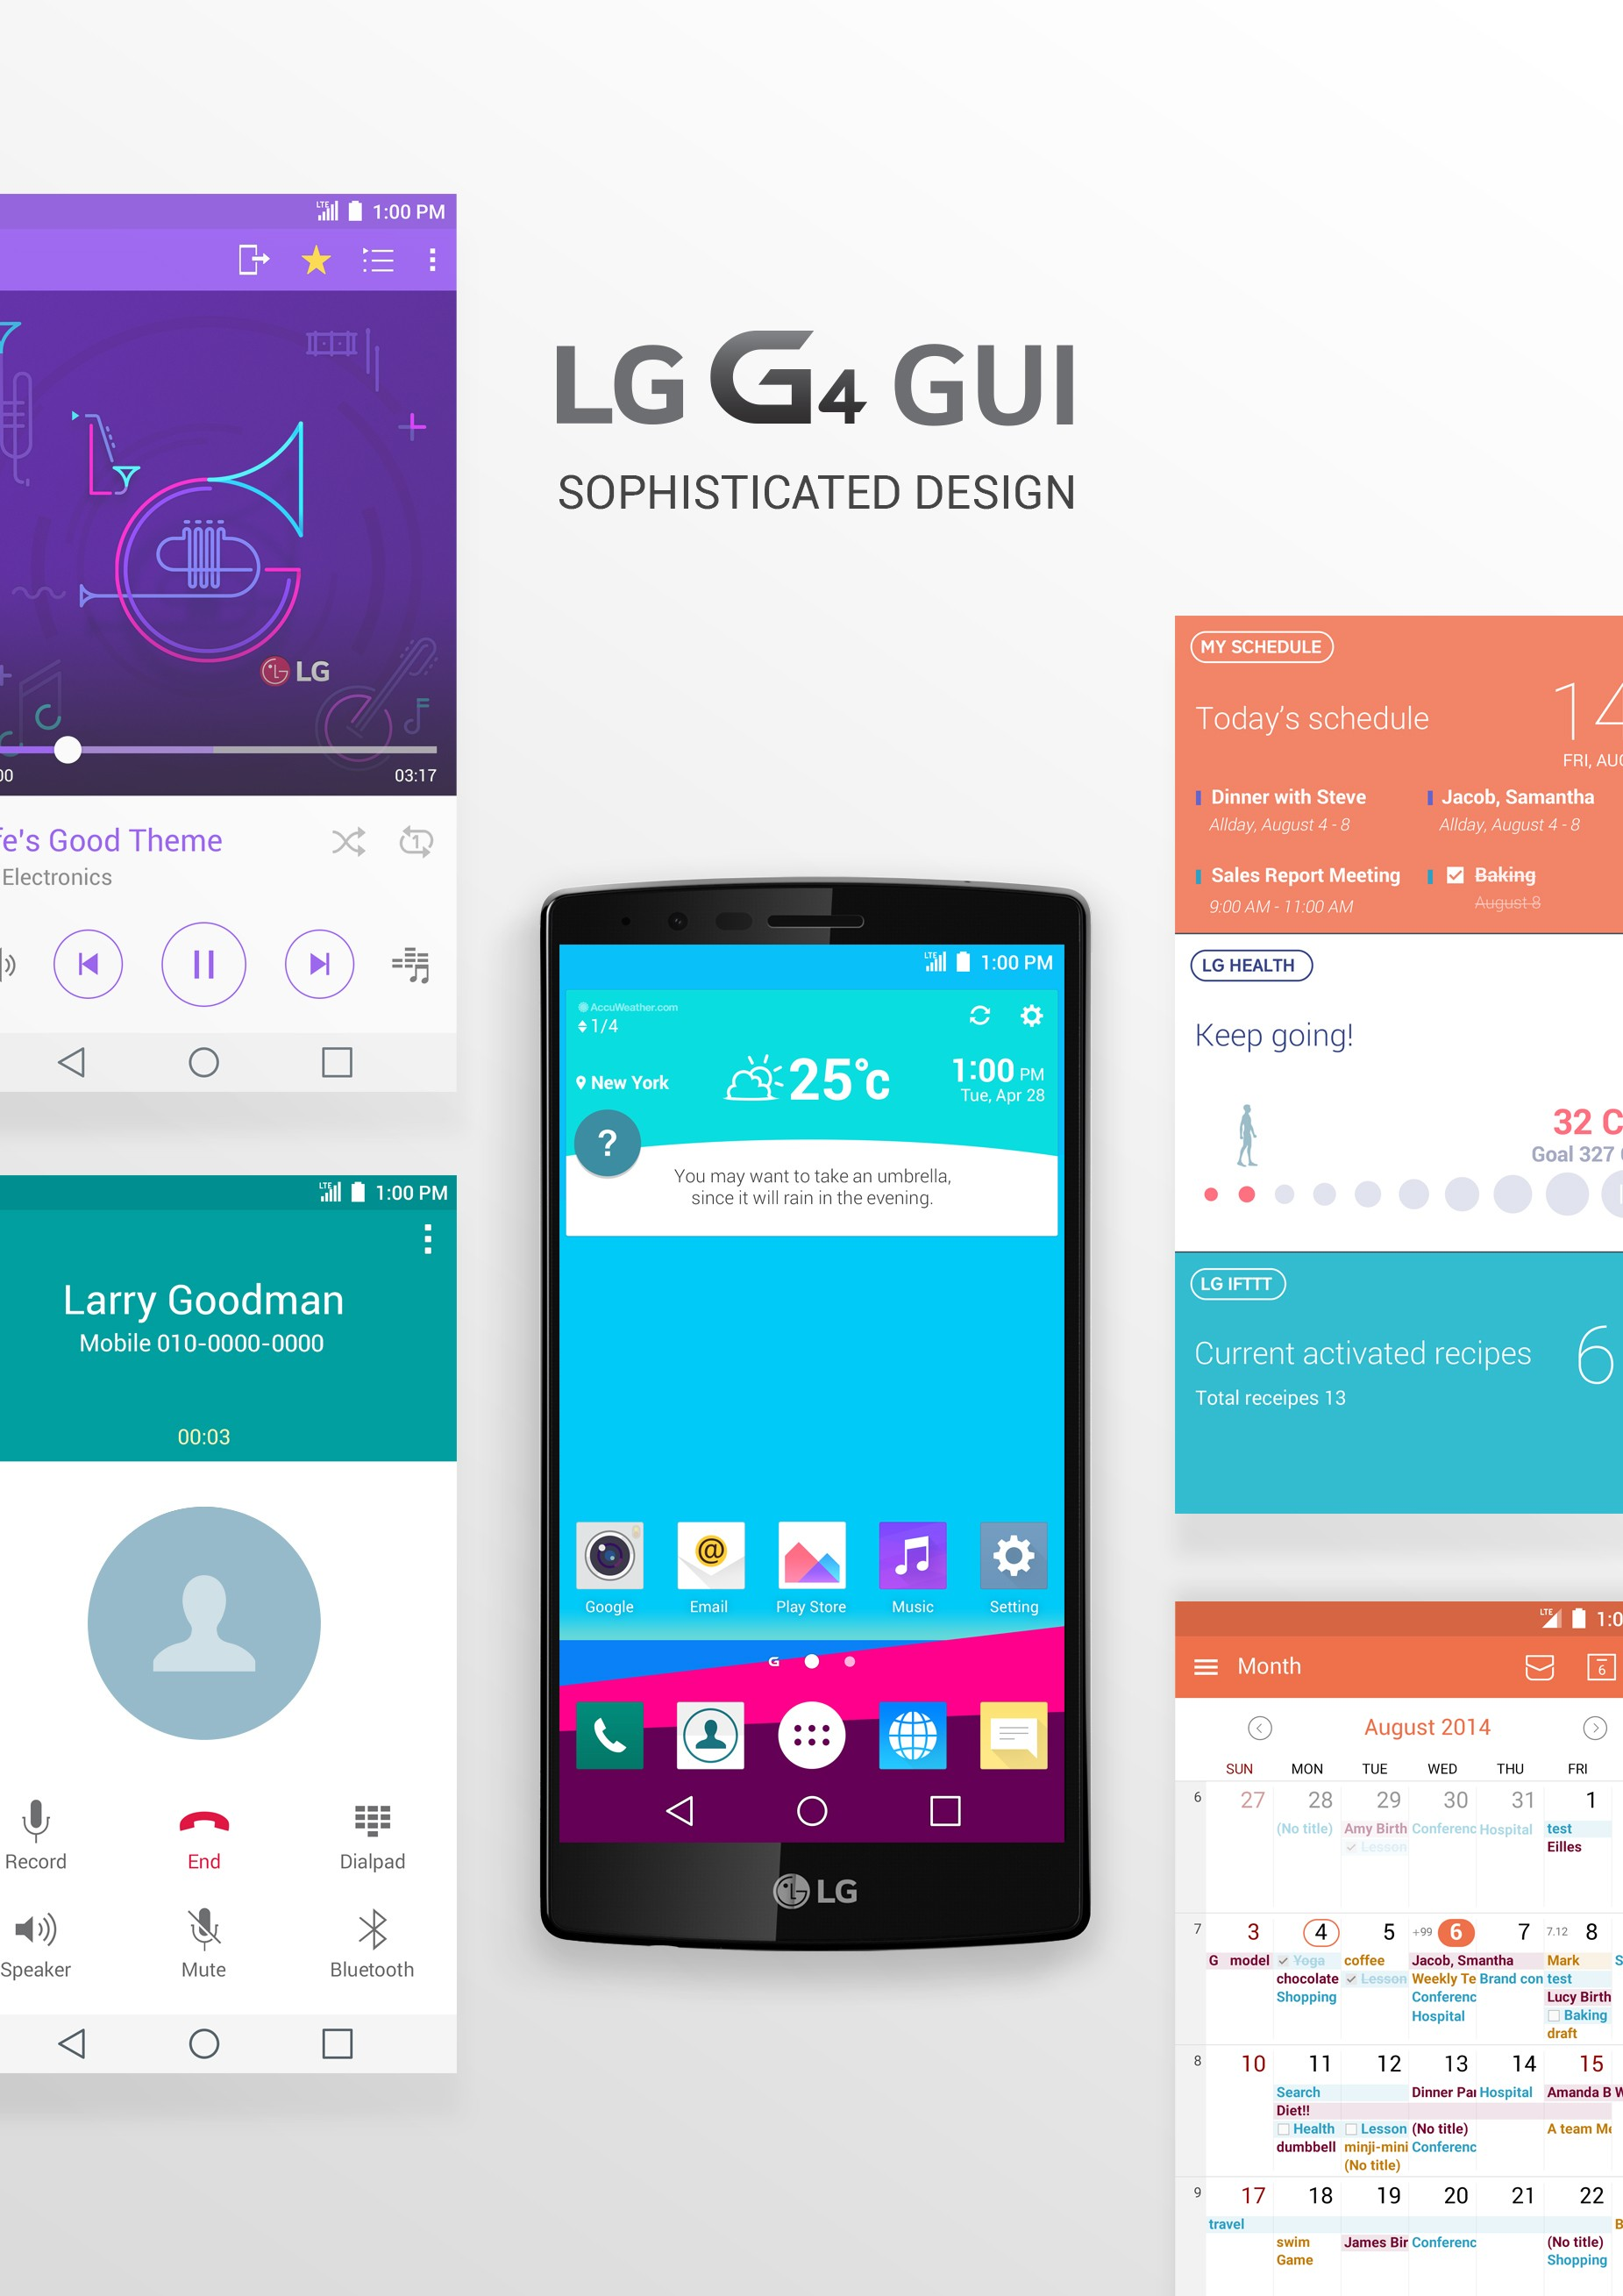 A diagram showing off LG G4 GUI's sophisticated design, both in design and user interface.